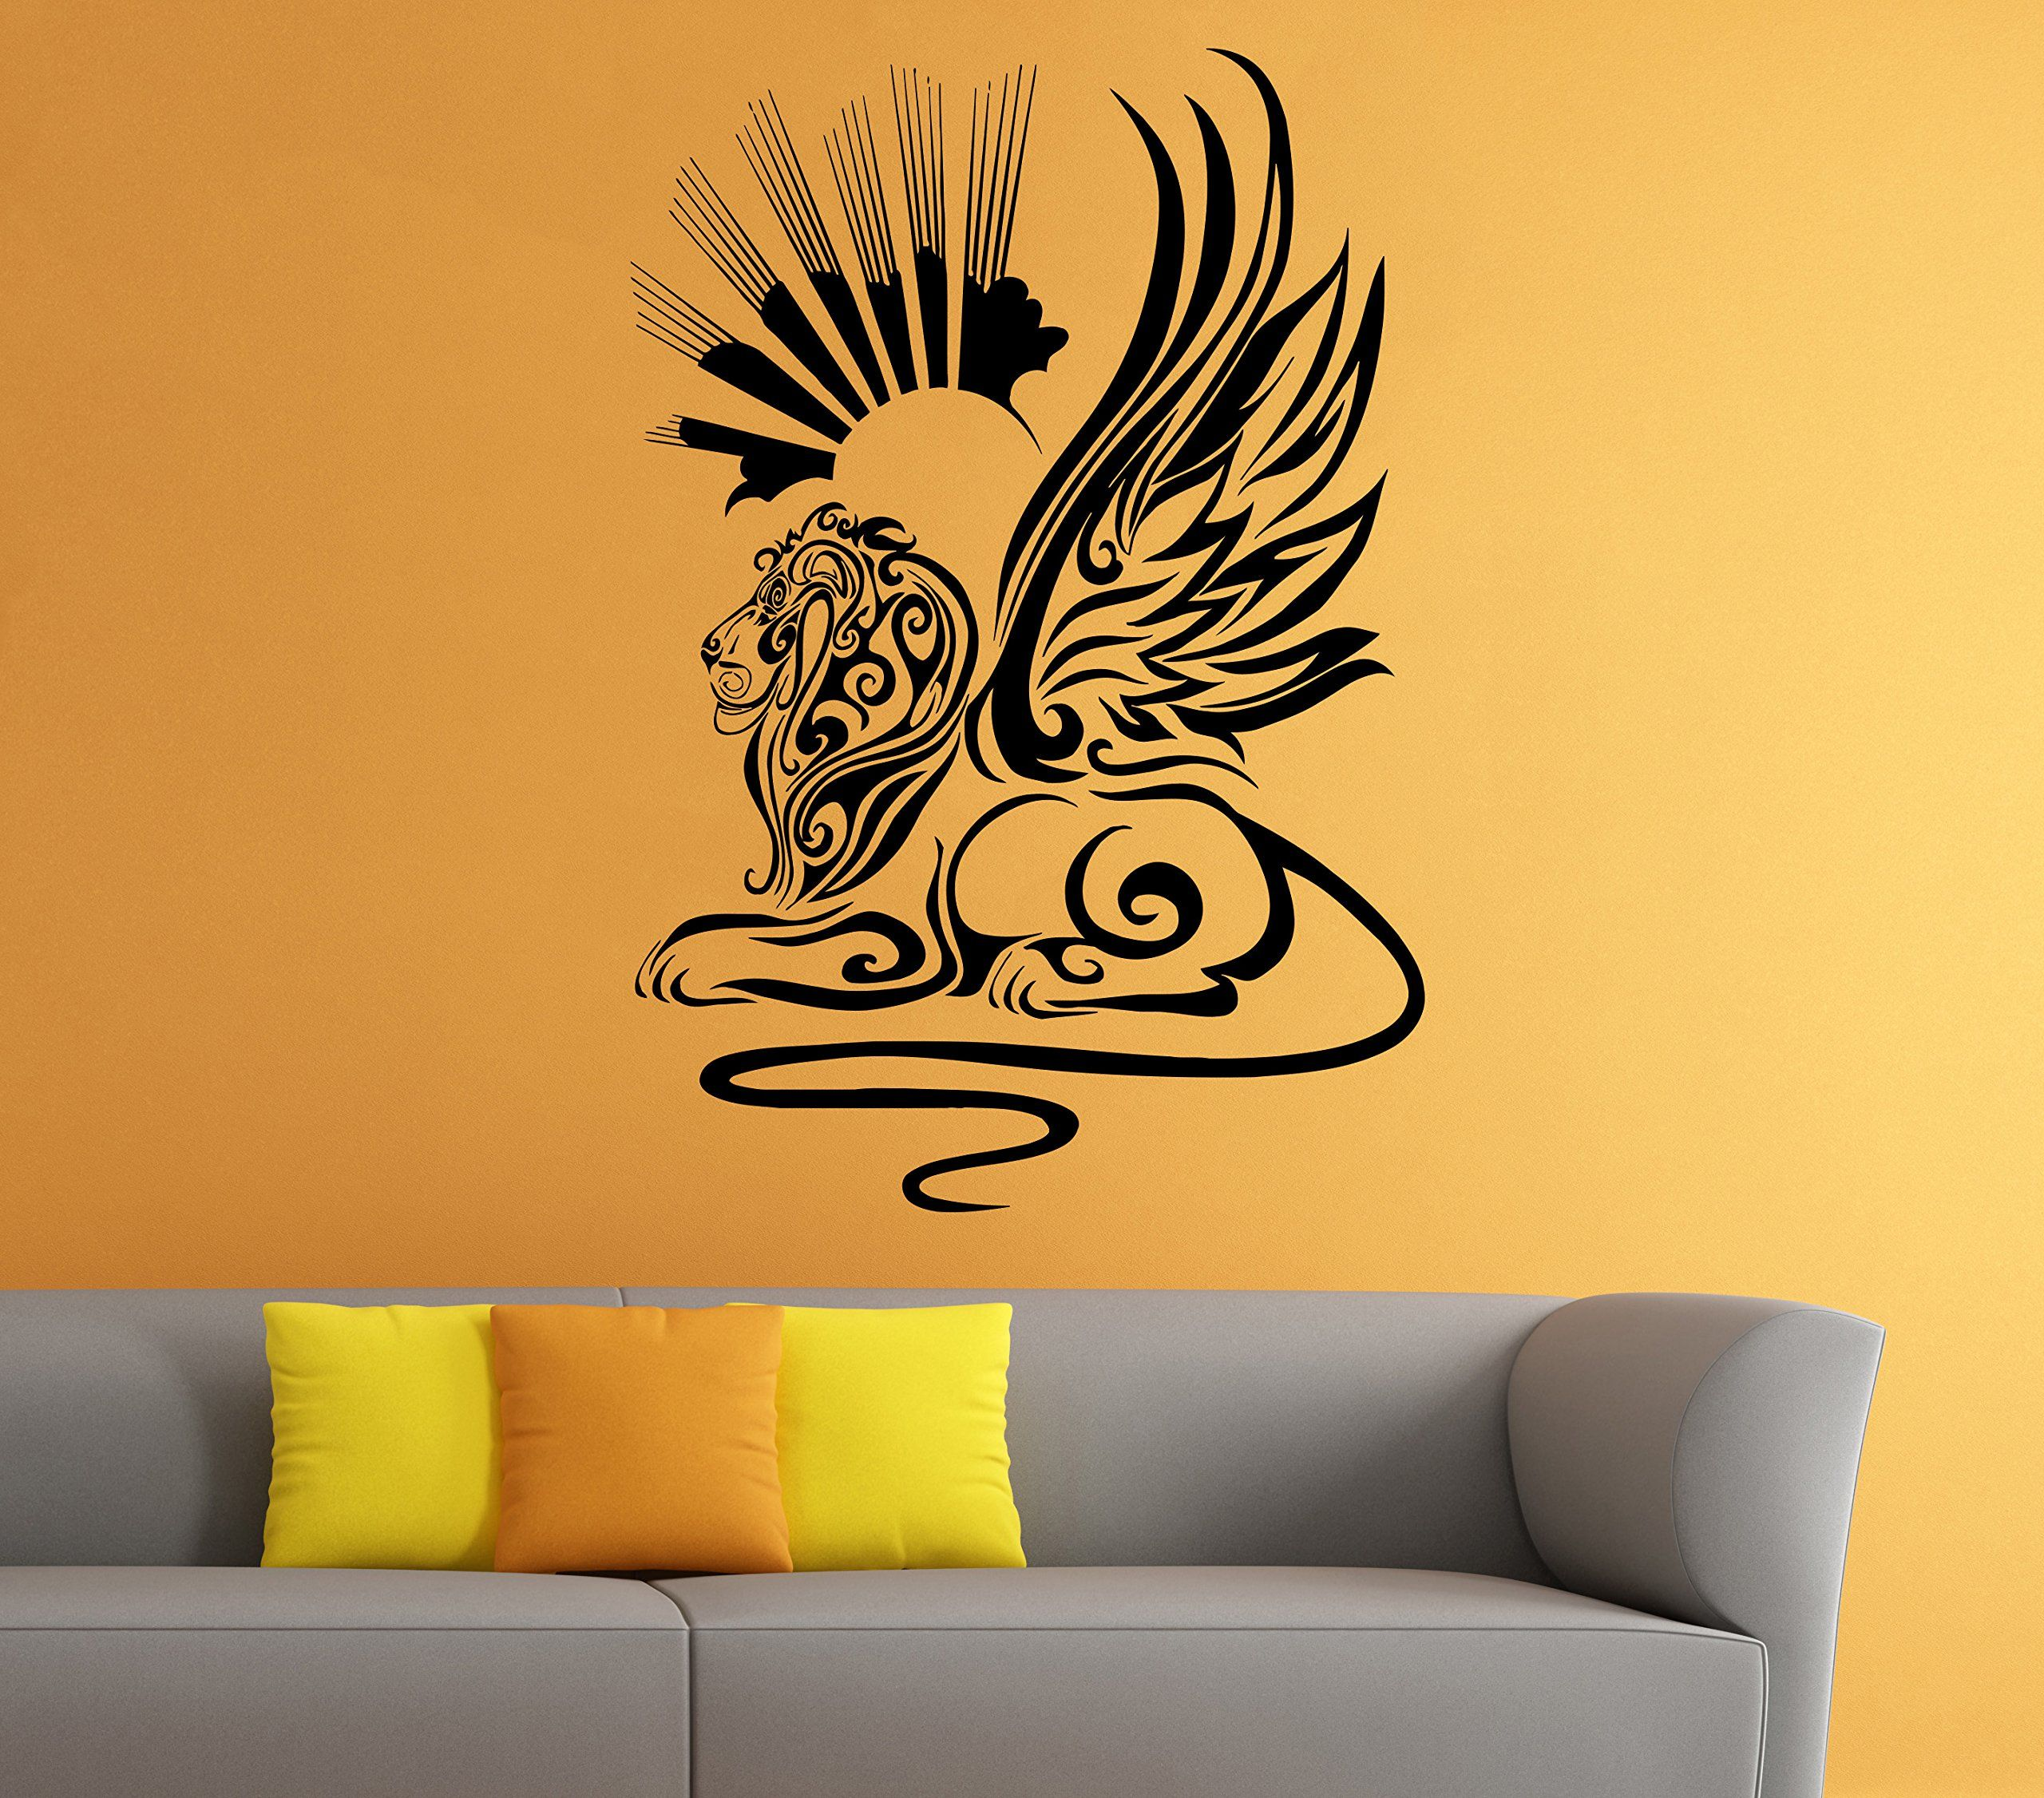 Fantastic Wall Stickers Decoration In Egypt Images - The Wall Art ...